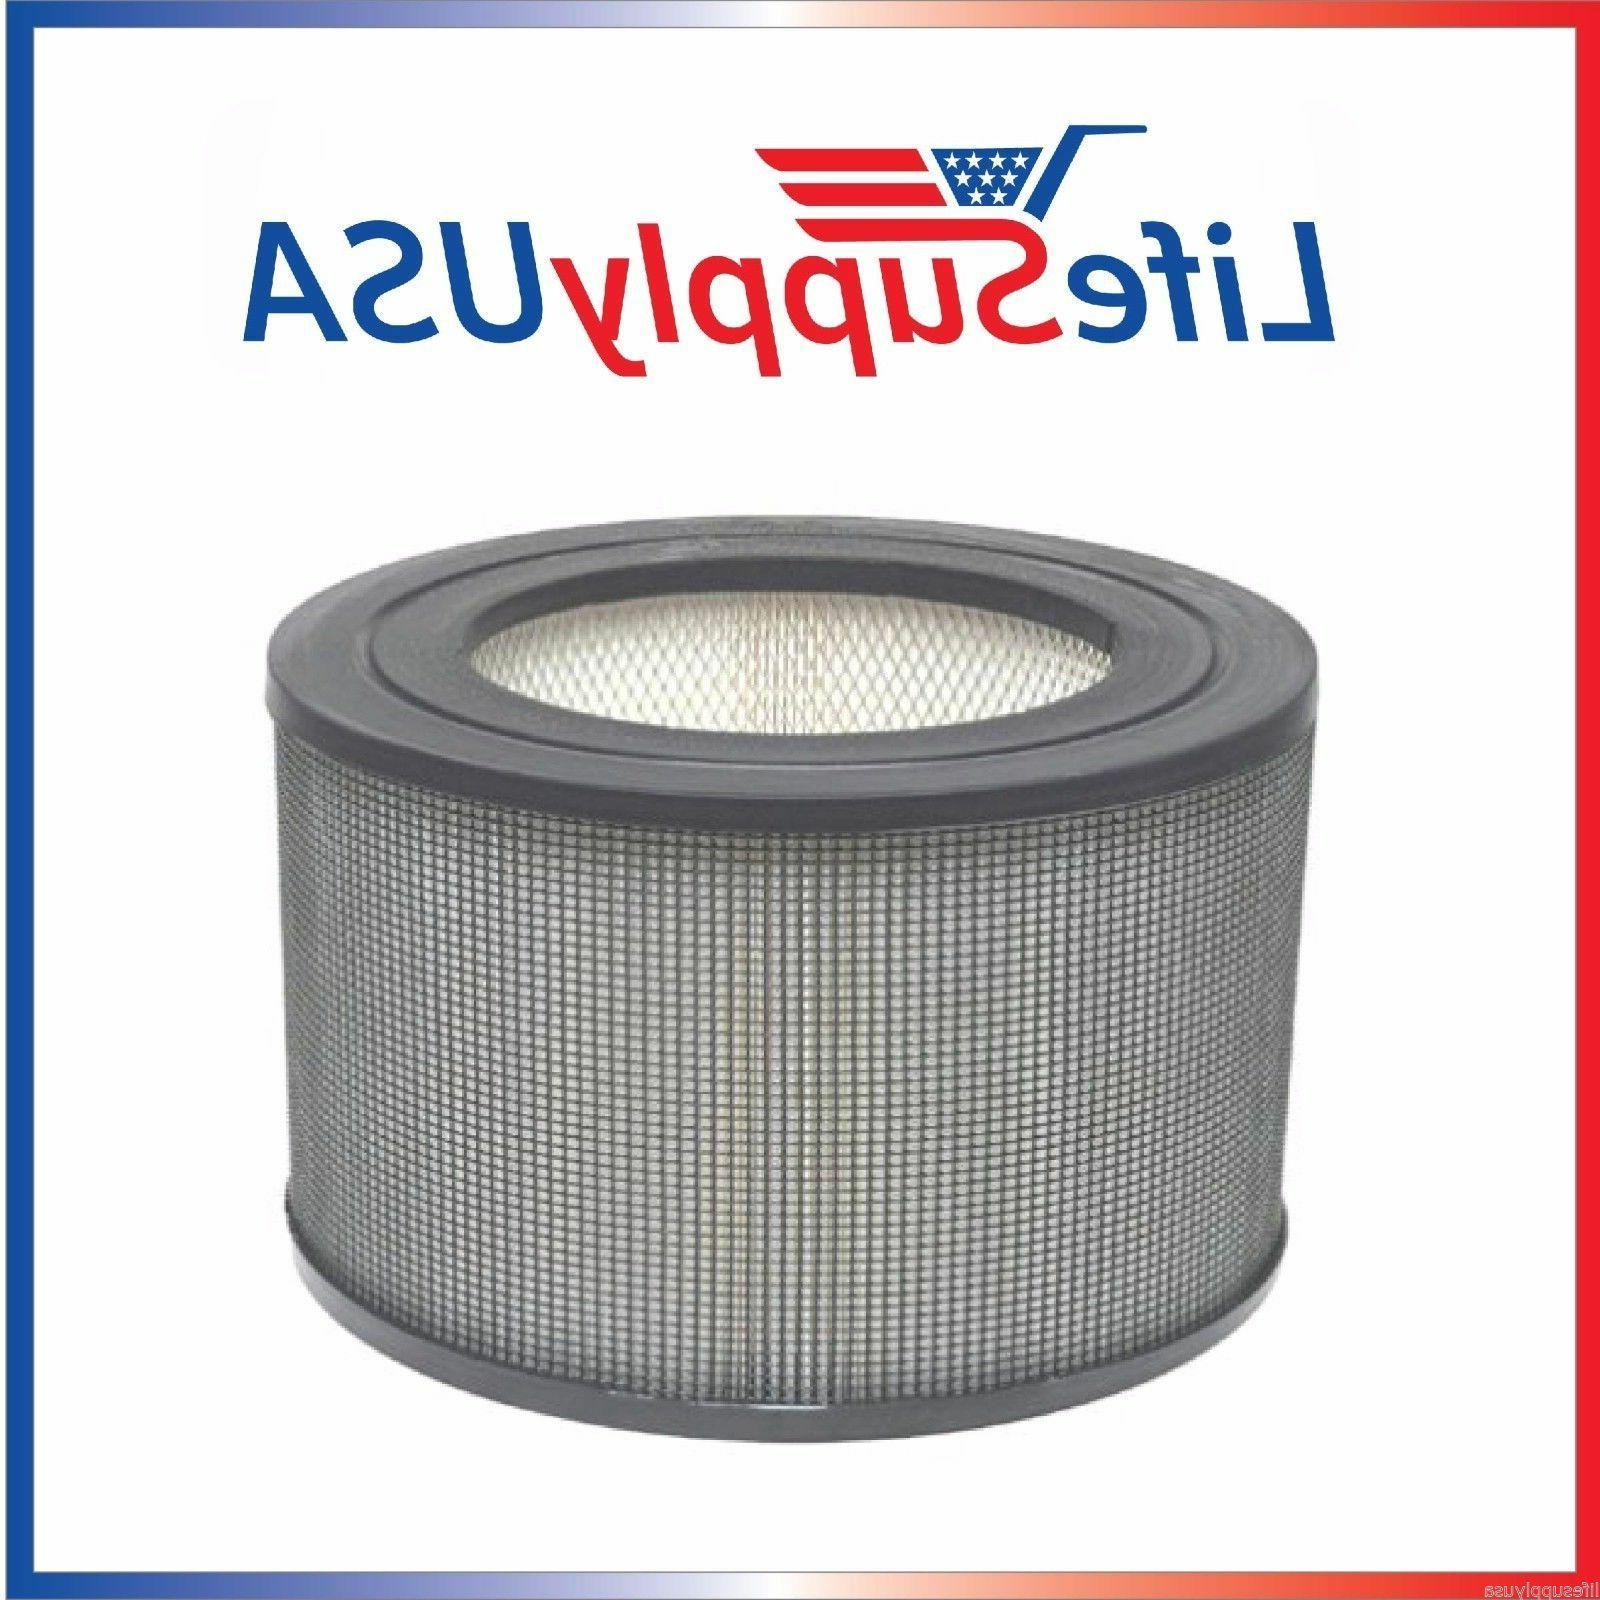 filter fits honeywell 24000 13500 50250 kenmore